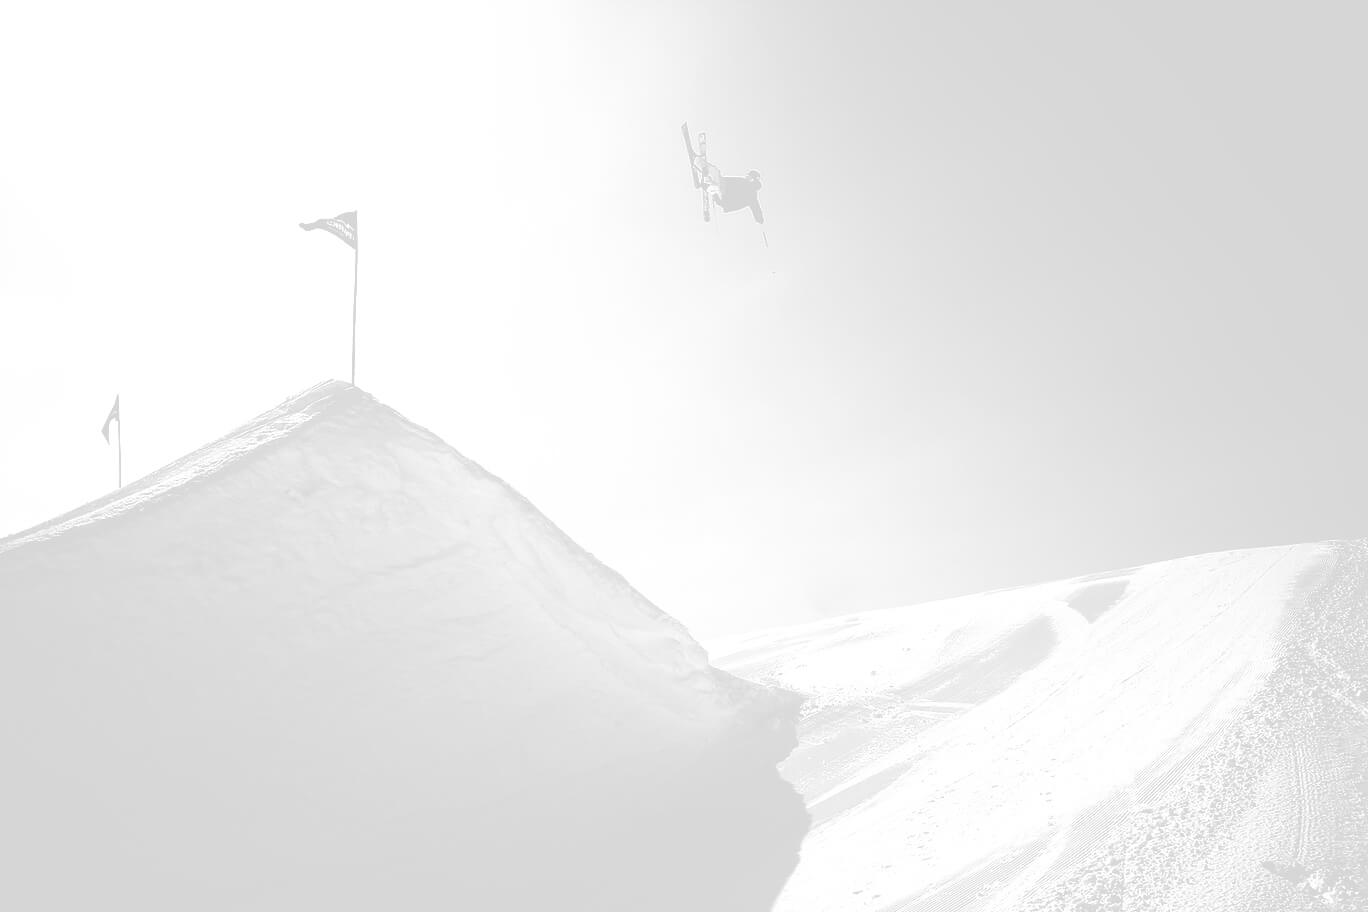 A freestyle skier in the air high above the hill.